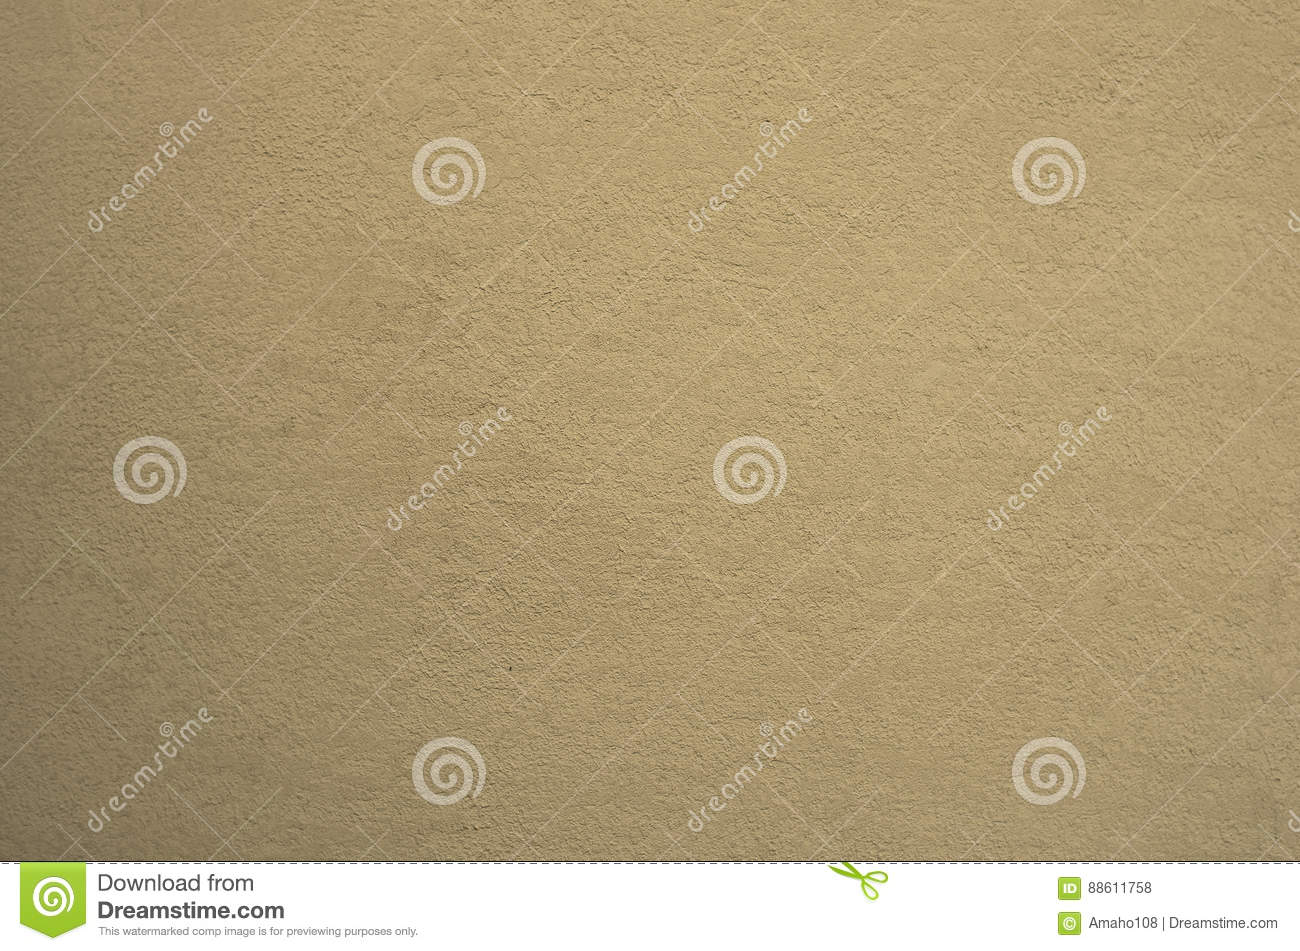 sand beige egypt texture with queen nefertiti and stock photo 26093748. Black Bedroom Furniture Sets. Home Design Ideas